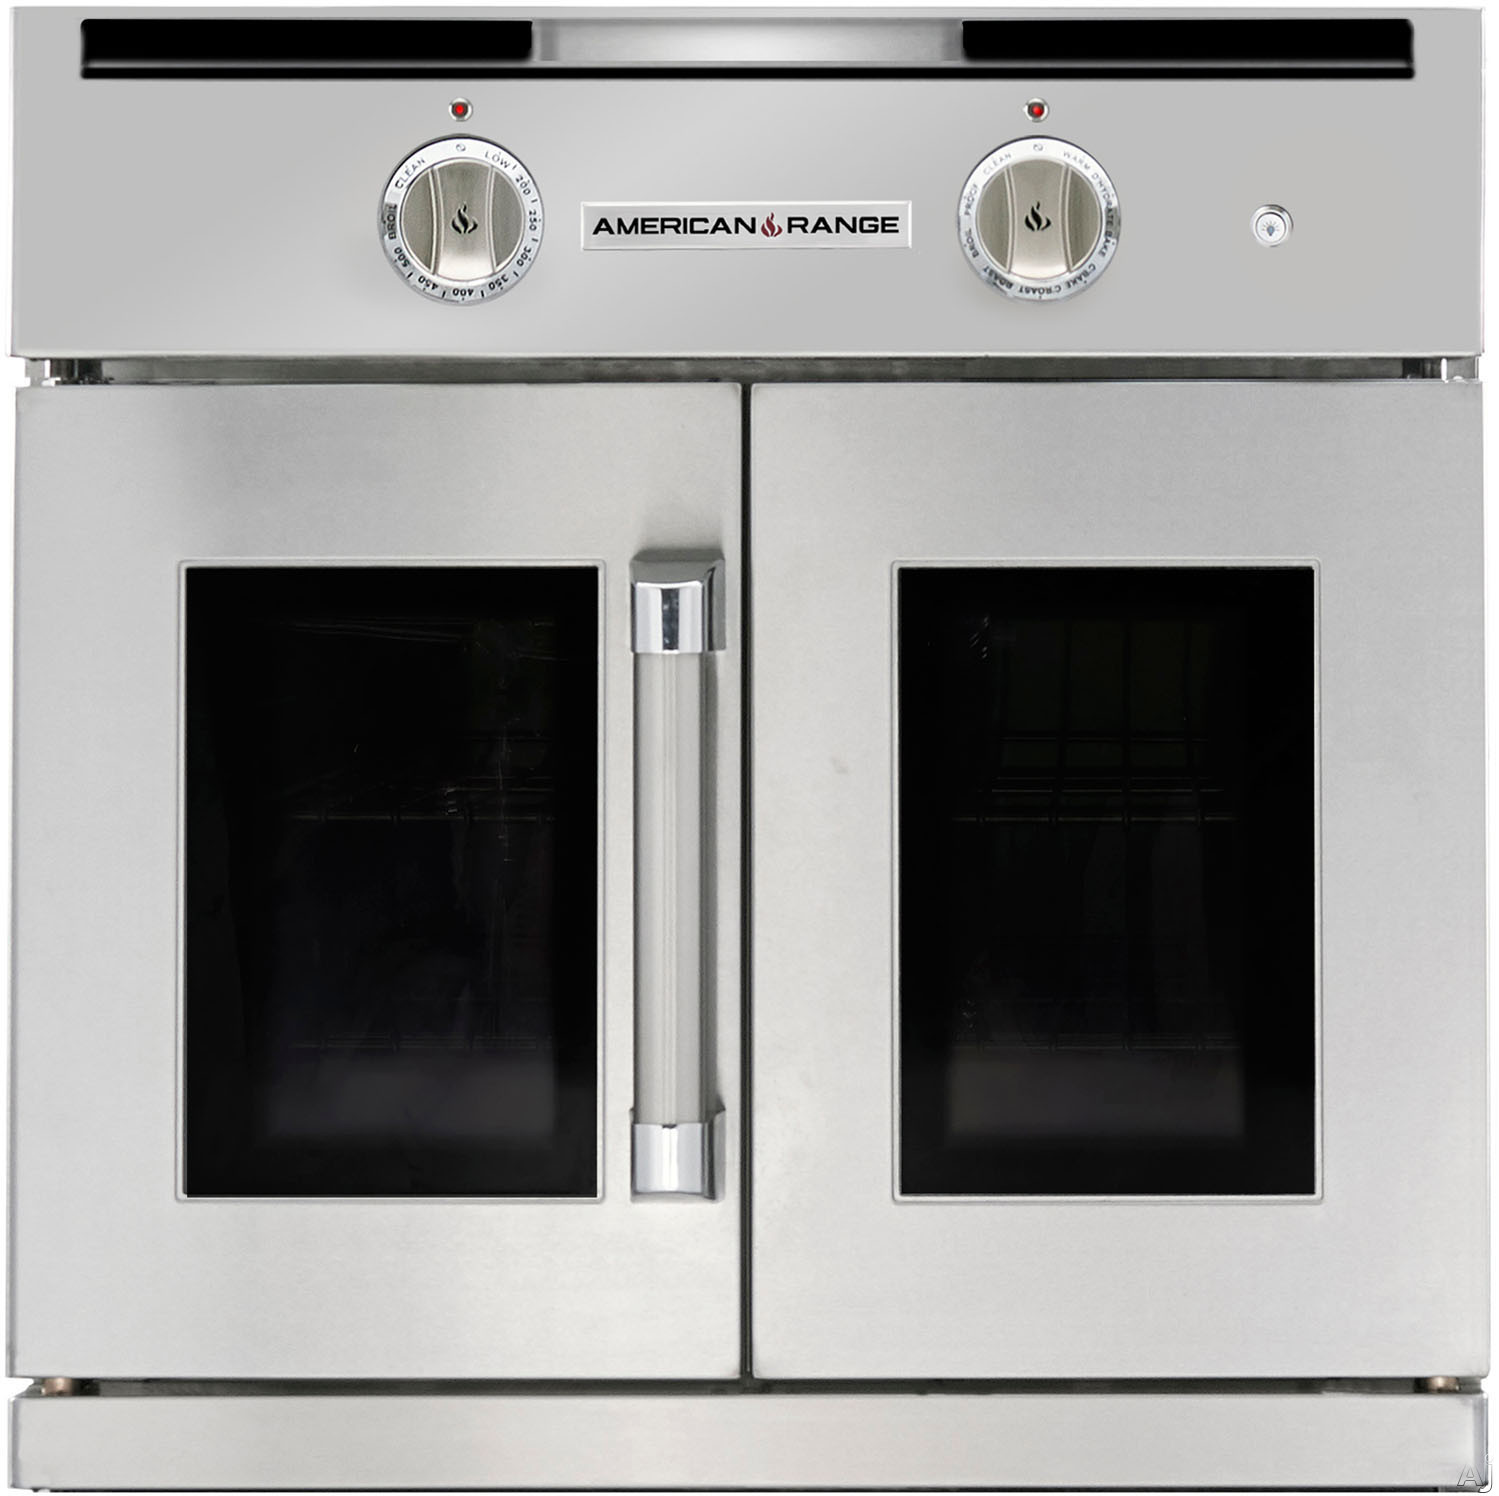 American Range Legacy Series AROFG30L 30 Inch Single French Door Gas Wall Oven with 4.7 cu. ft. Capacity, Innovection Convection, Manual Clean, Infrared Broiler and Porcelainized Interior: Liquid Prop